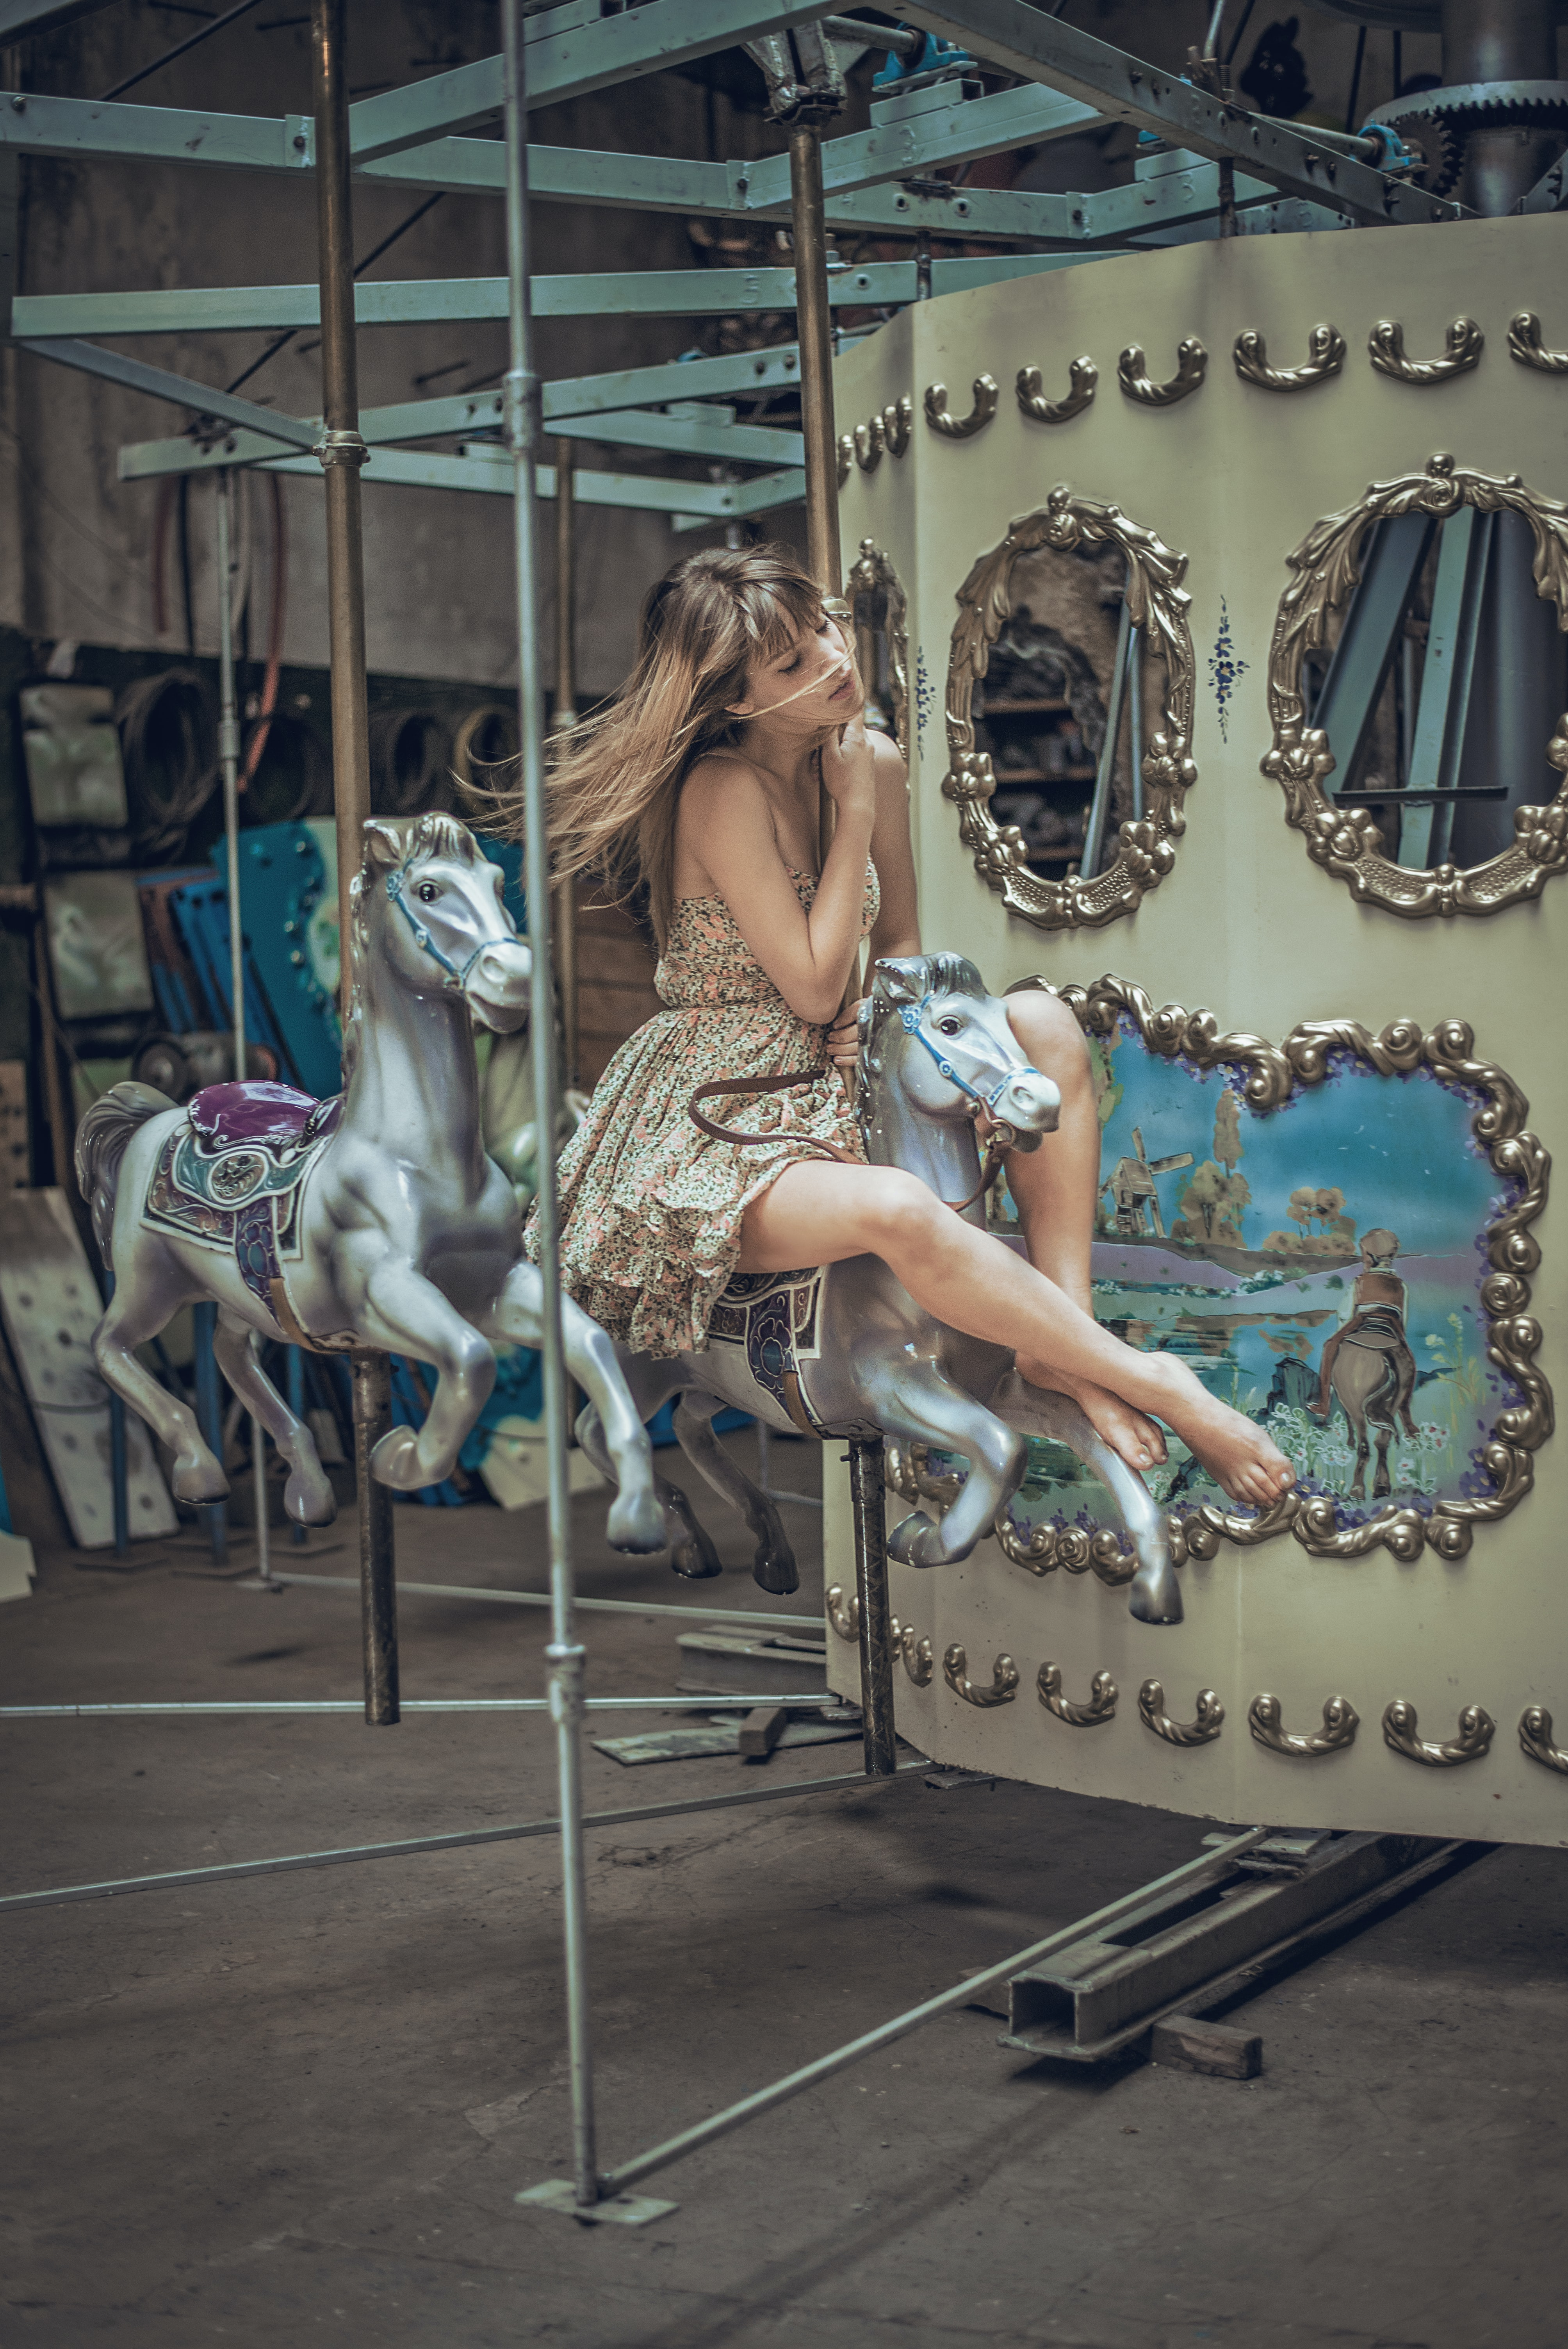 A woman wearing a party dress sitting on a carousel in Buenos Aires